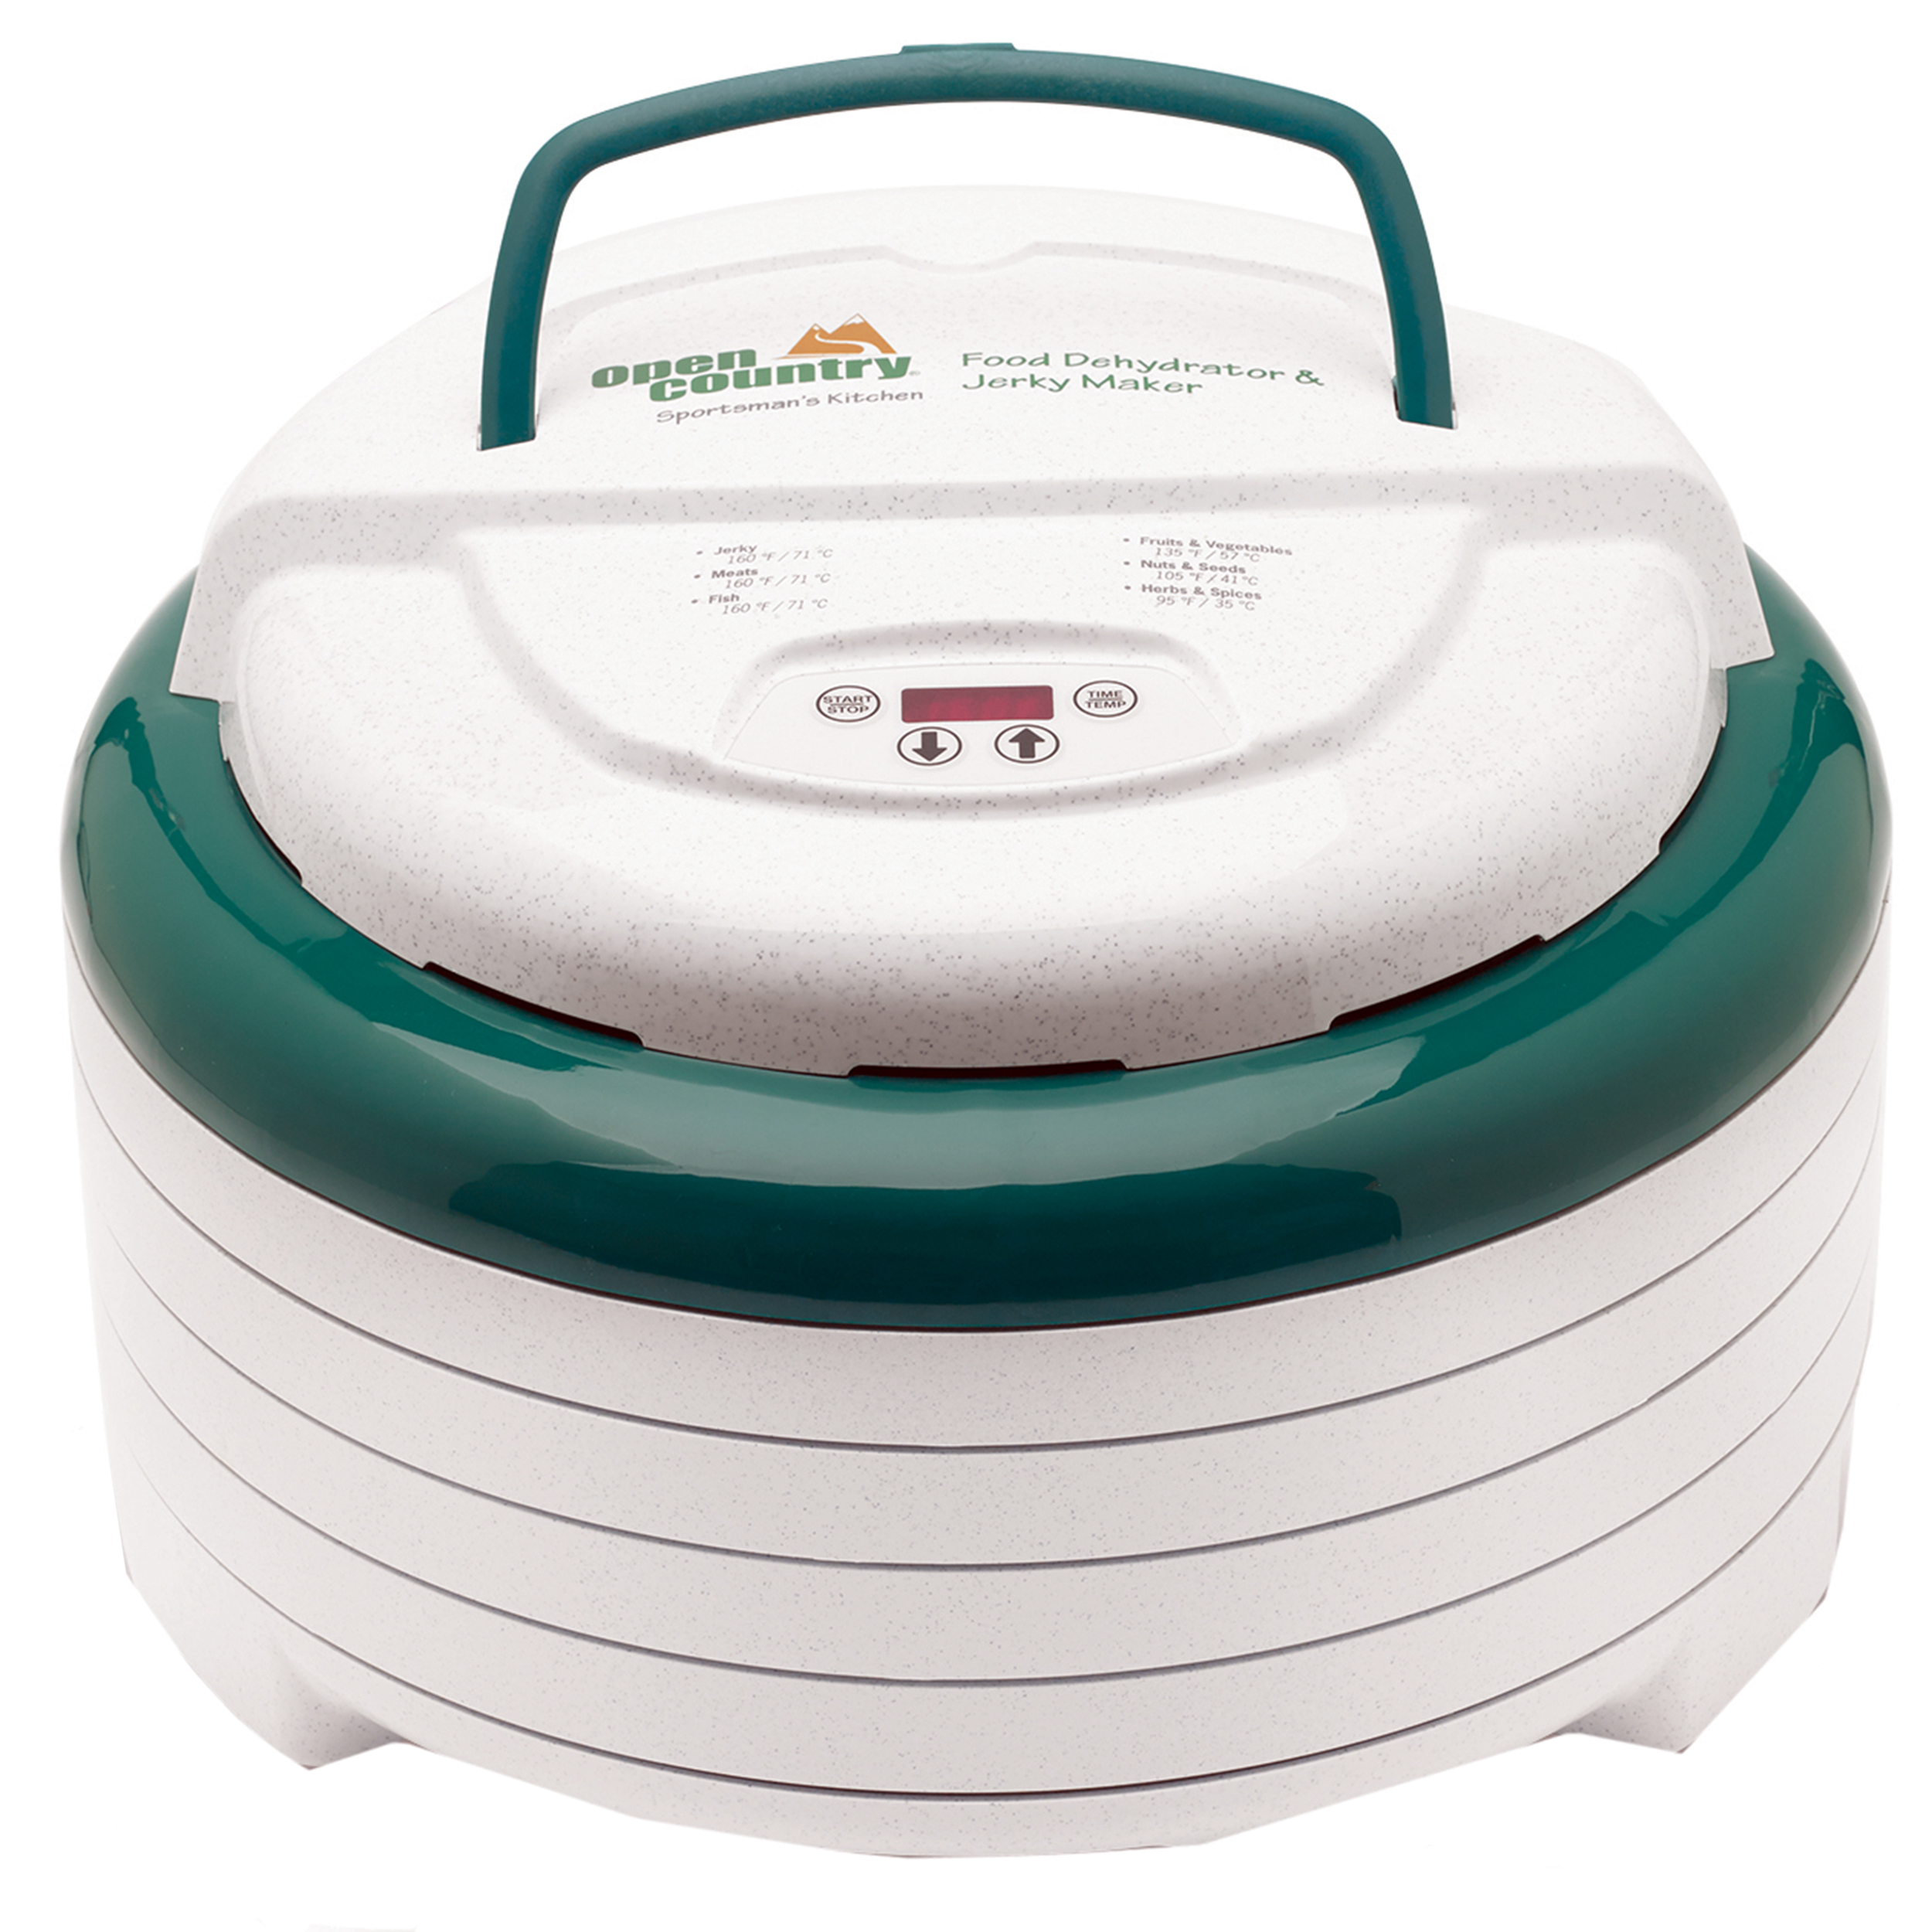 Open Country Dehydrator Gardenmaster Digital 1000 4-Tray FD-1022SK